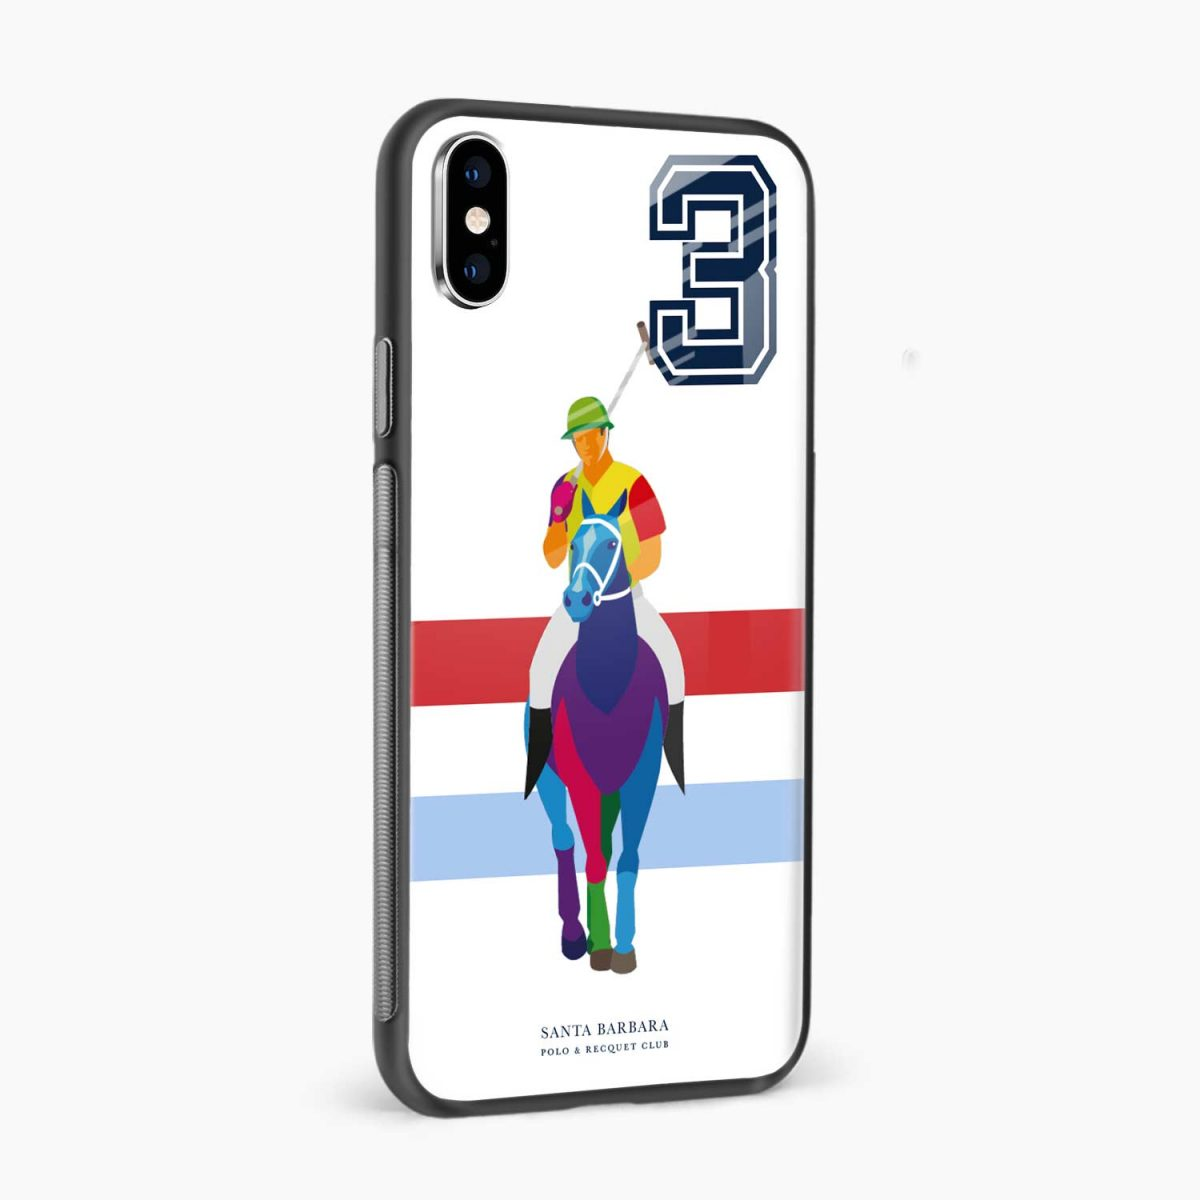 multicolor sant barbara polo side view apple iphone x xs max back cover